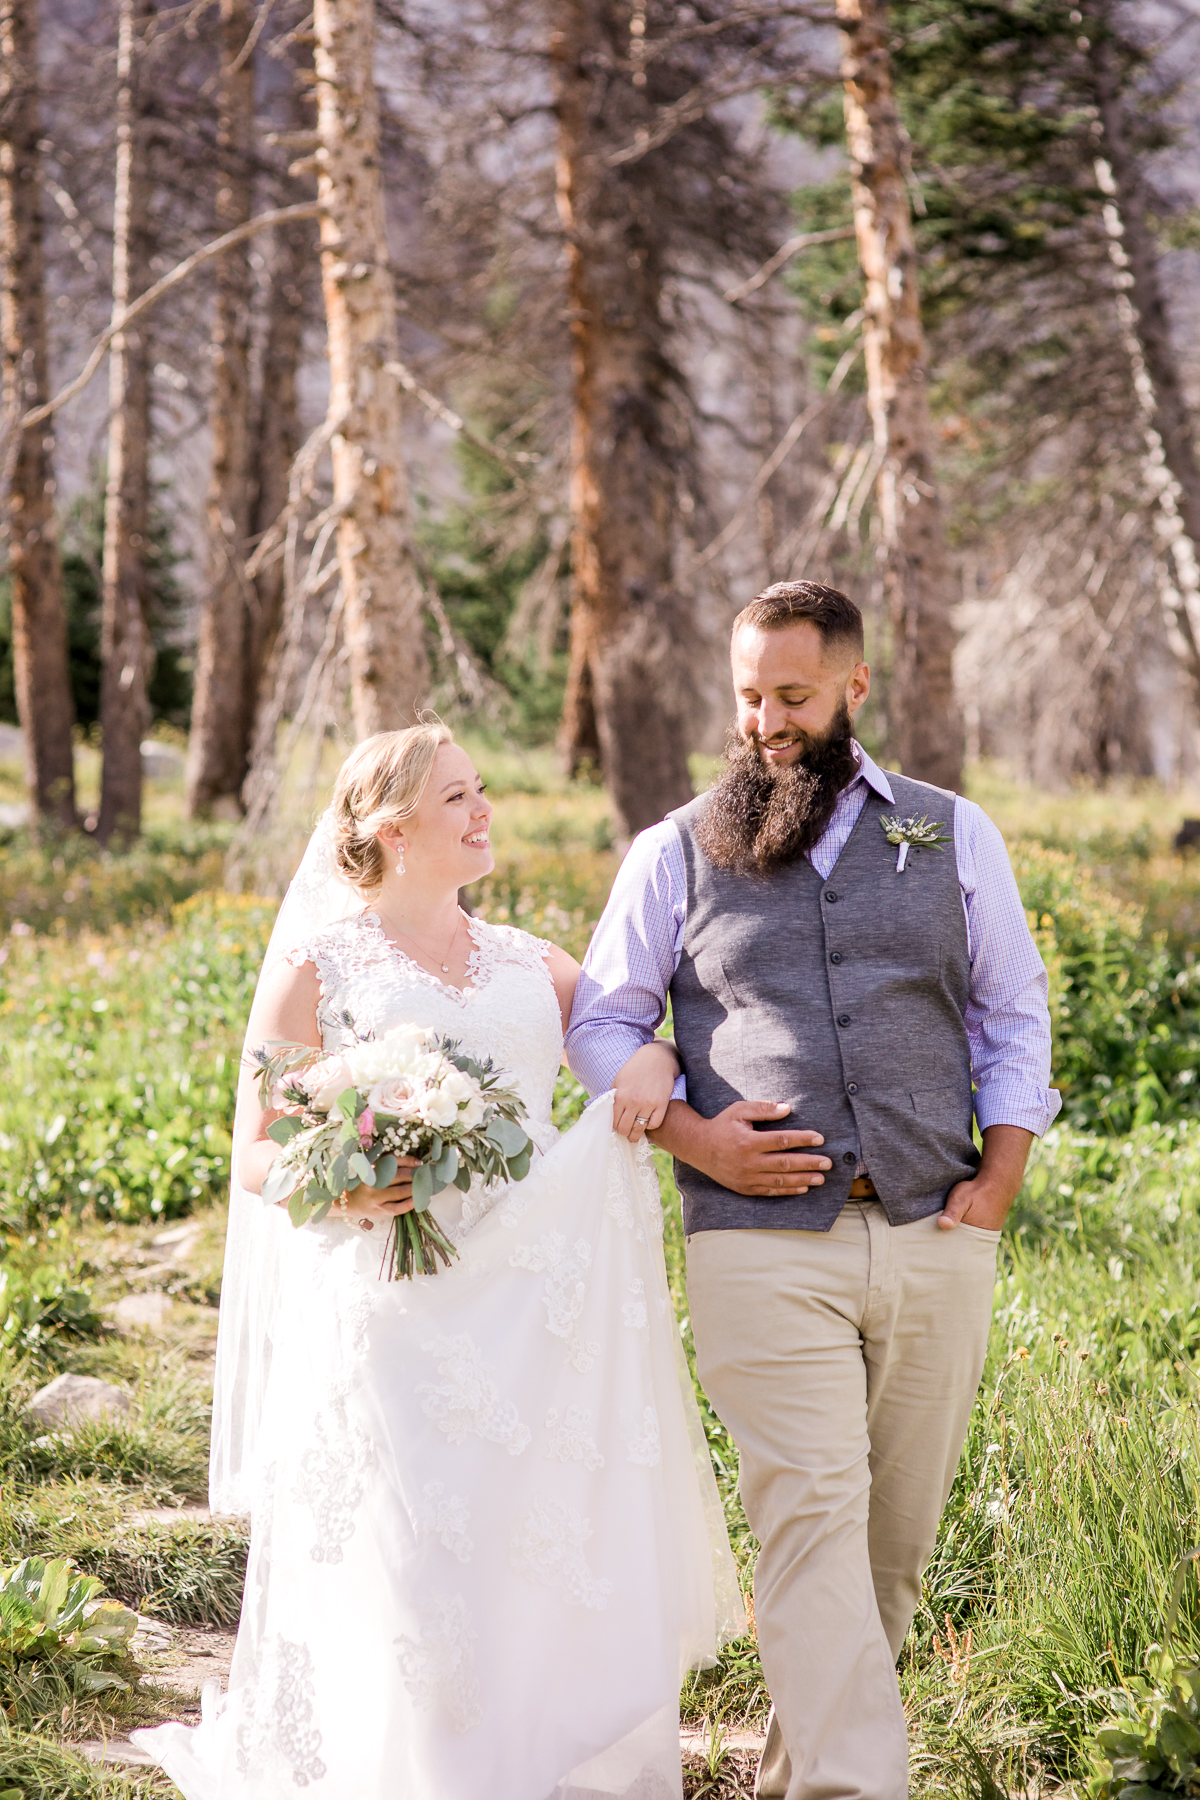 Elopement in The Snowy Range Mountains by Wyoming based photographer, Megan Lee Photography